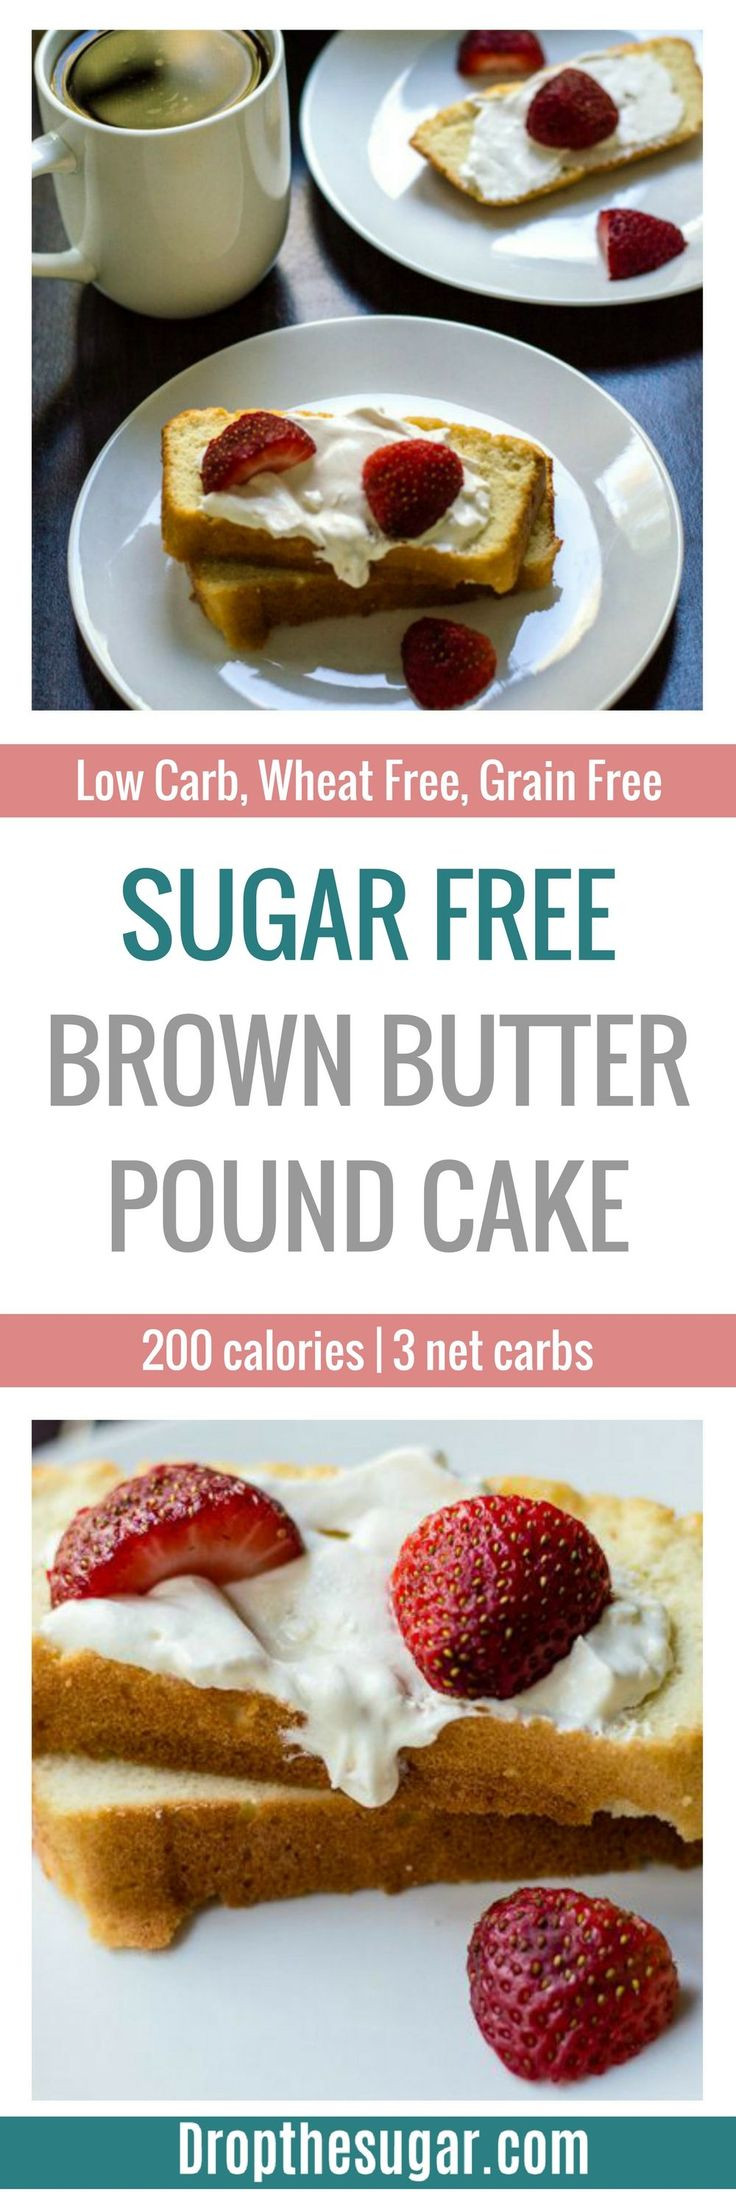 Sugar Free Low Carb Desserts For Diabetics  Sugar Free Brown Butter Pound Cake